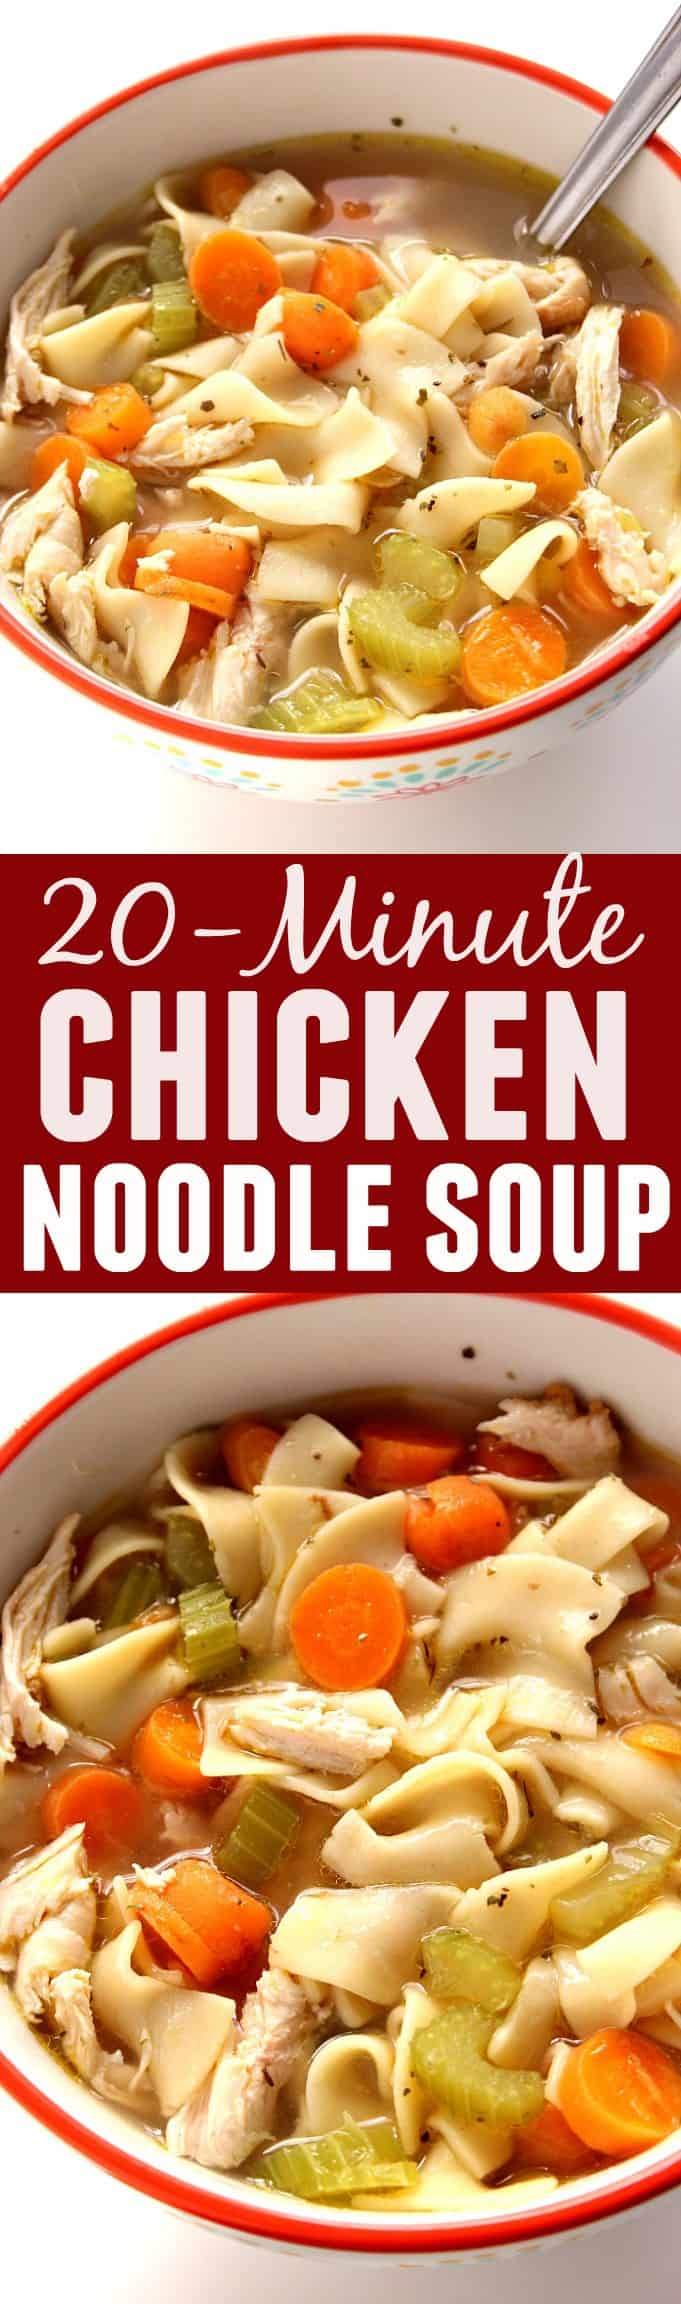 ... Quick and easy chicken noodle soup to beat the cold or just satisfy